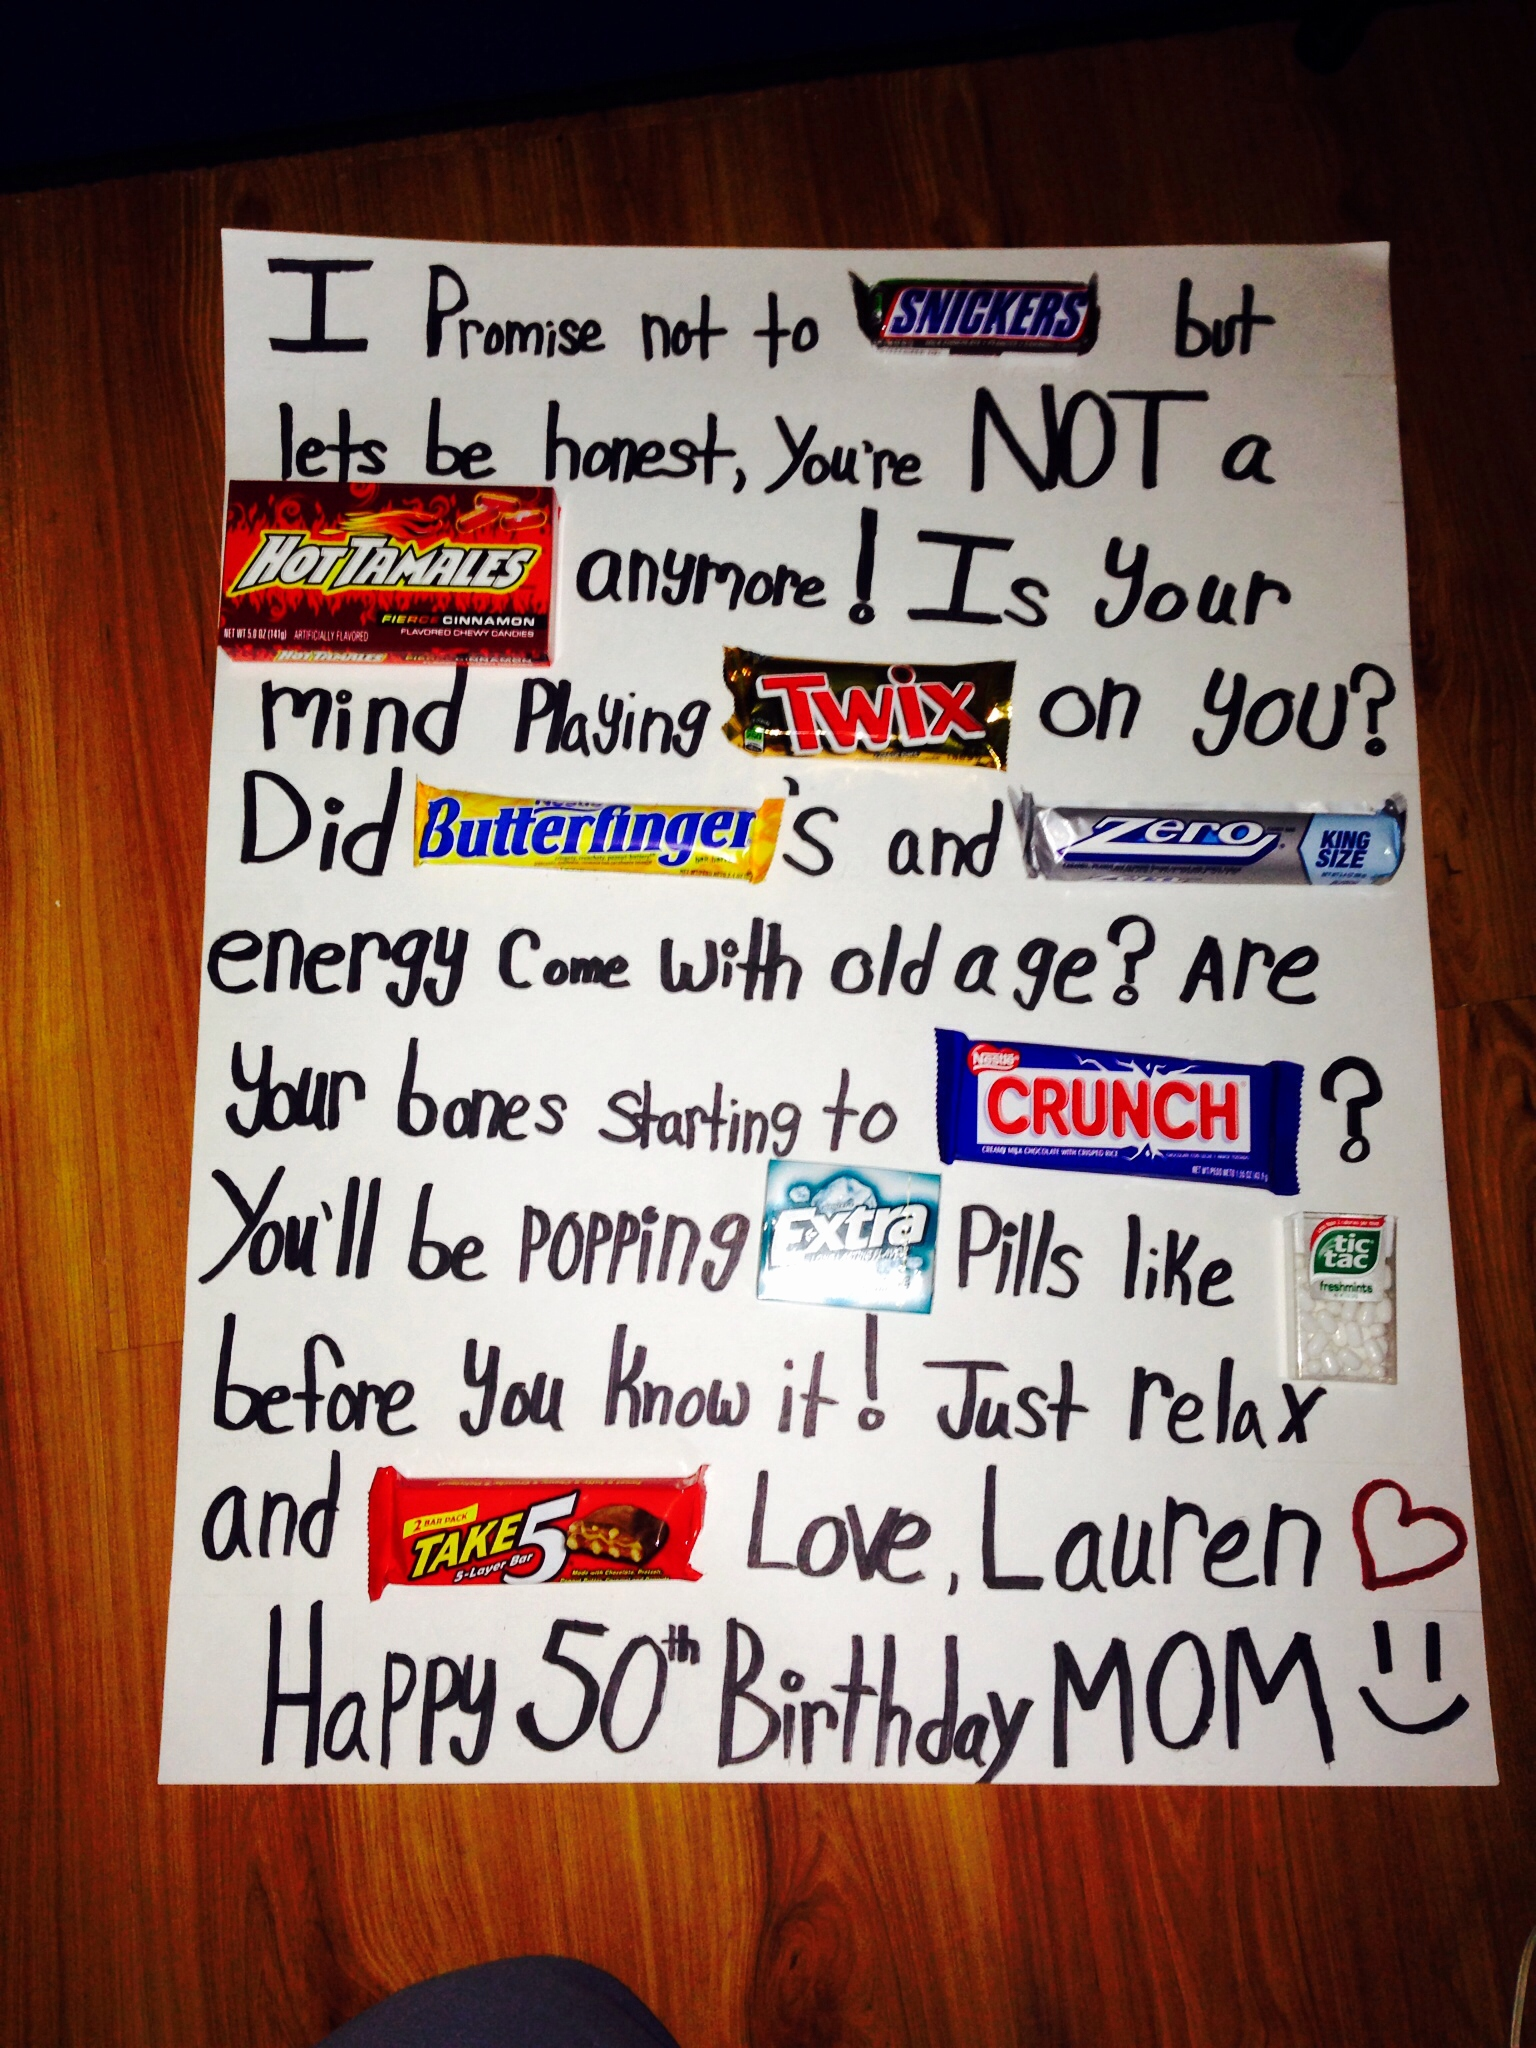 poster board ideas for birthday ; 50th-birthday-card-ideas-fresh-50th-birthday-candy-poster-board-so-cute-and-easy-of-50th-birthday-card-ideas